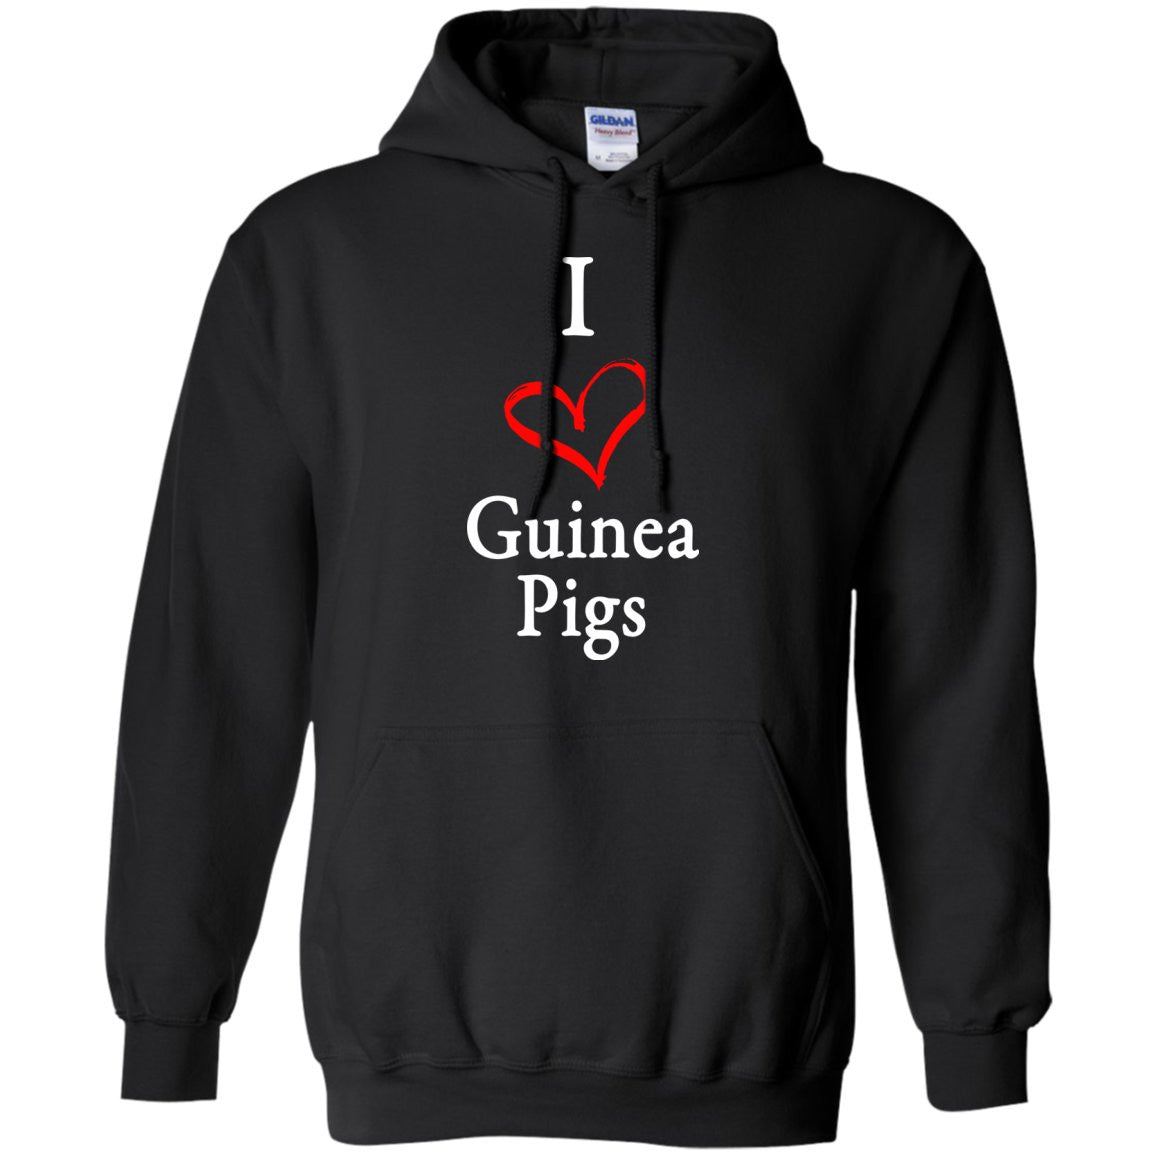 I Heart Guinea Pigs  Pullover Hoodie 8 oz